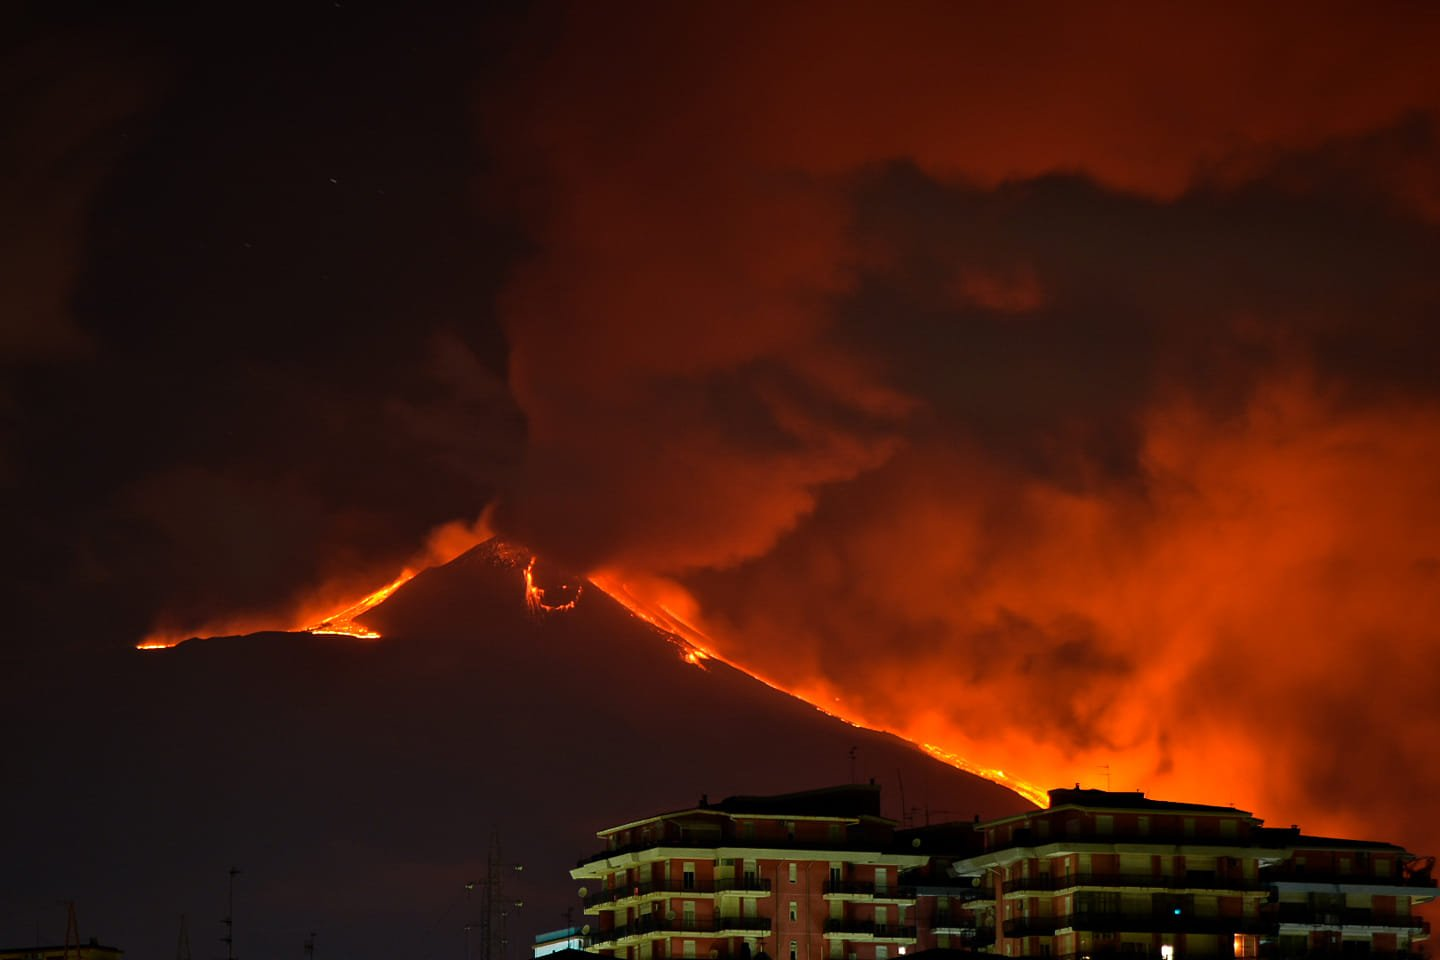 2nd eruption, 18th feb 2021. Etna with its lava flows, Enrico Indovina